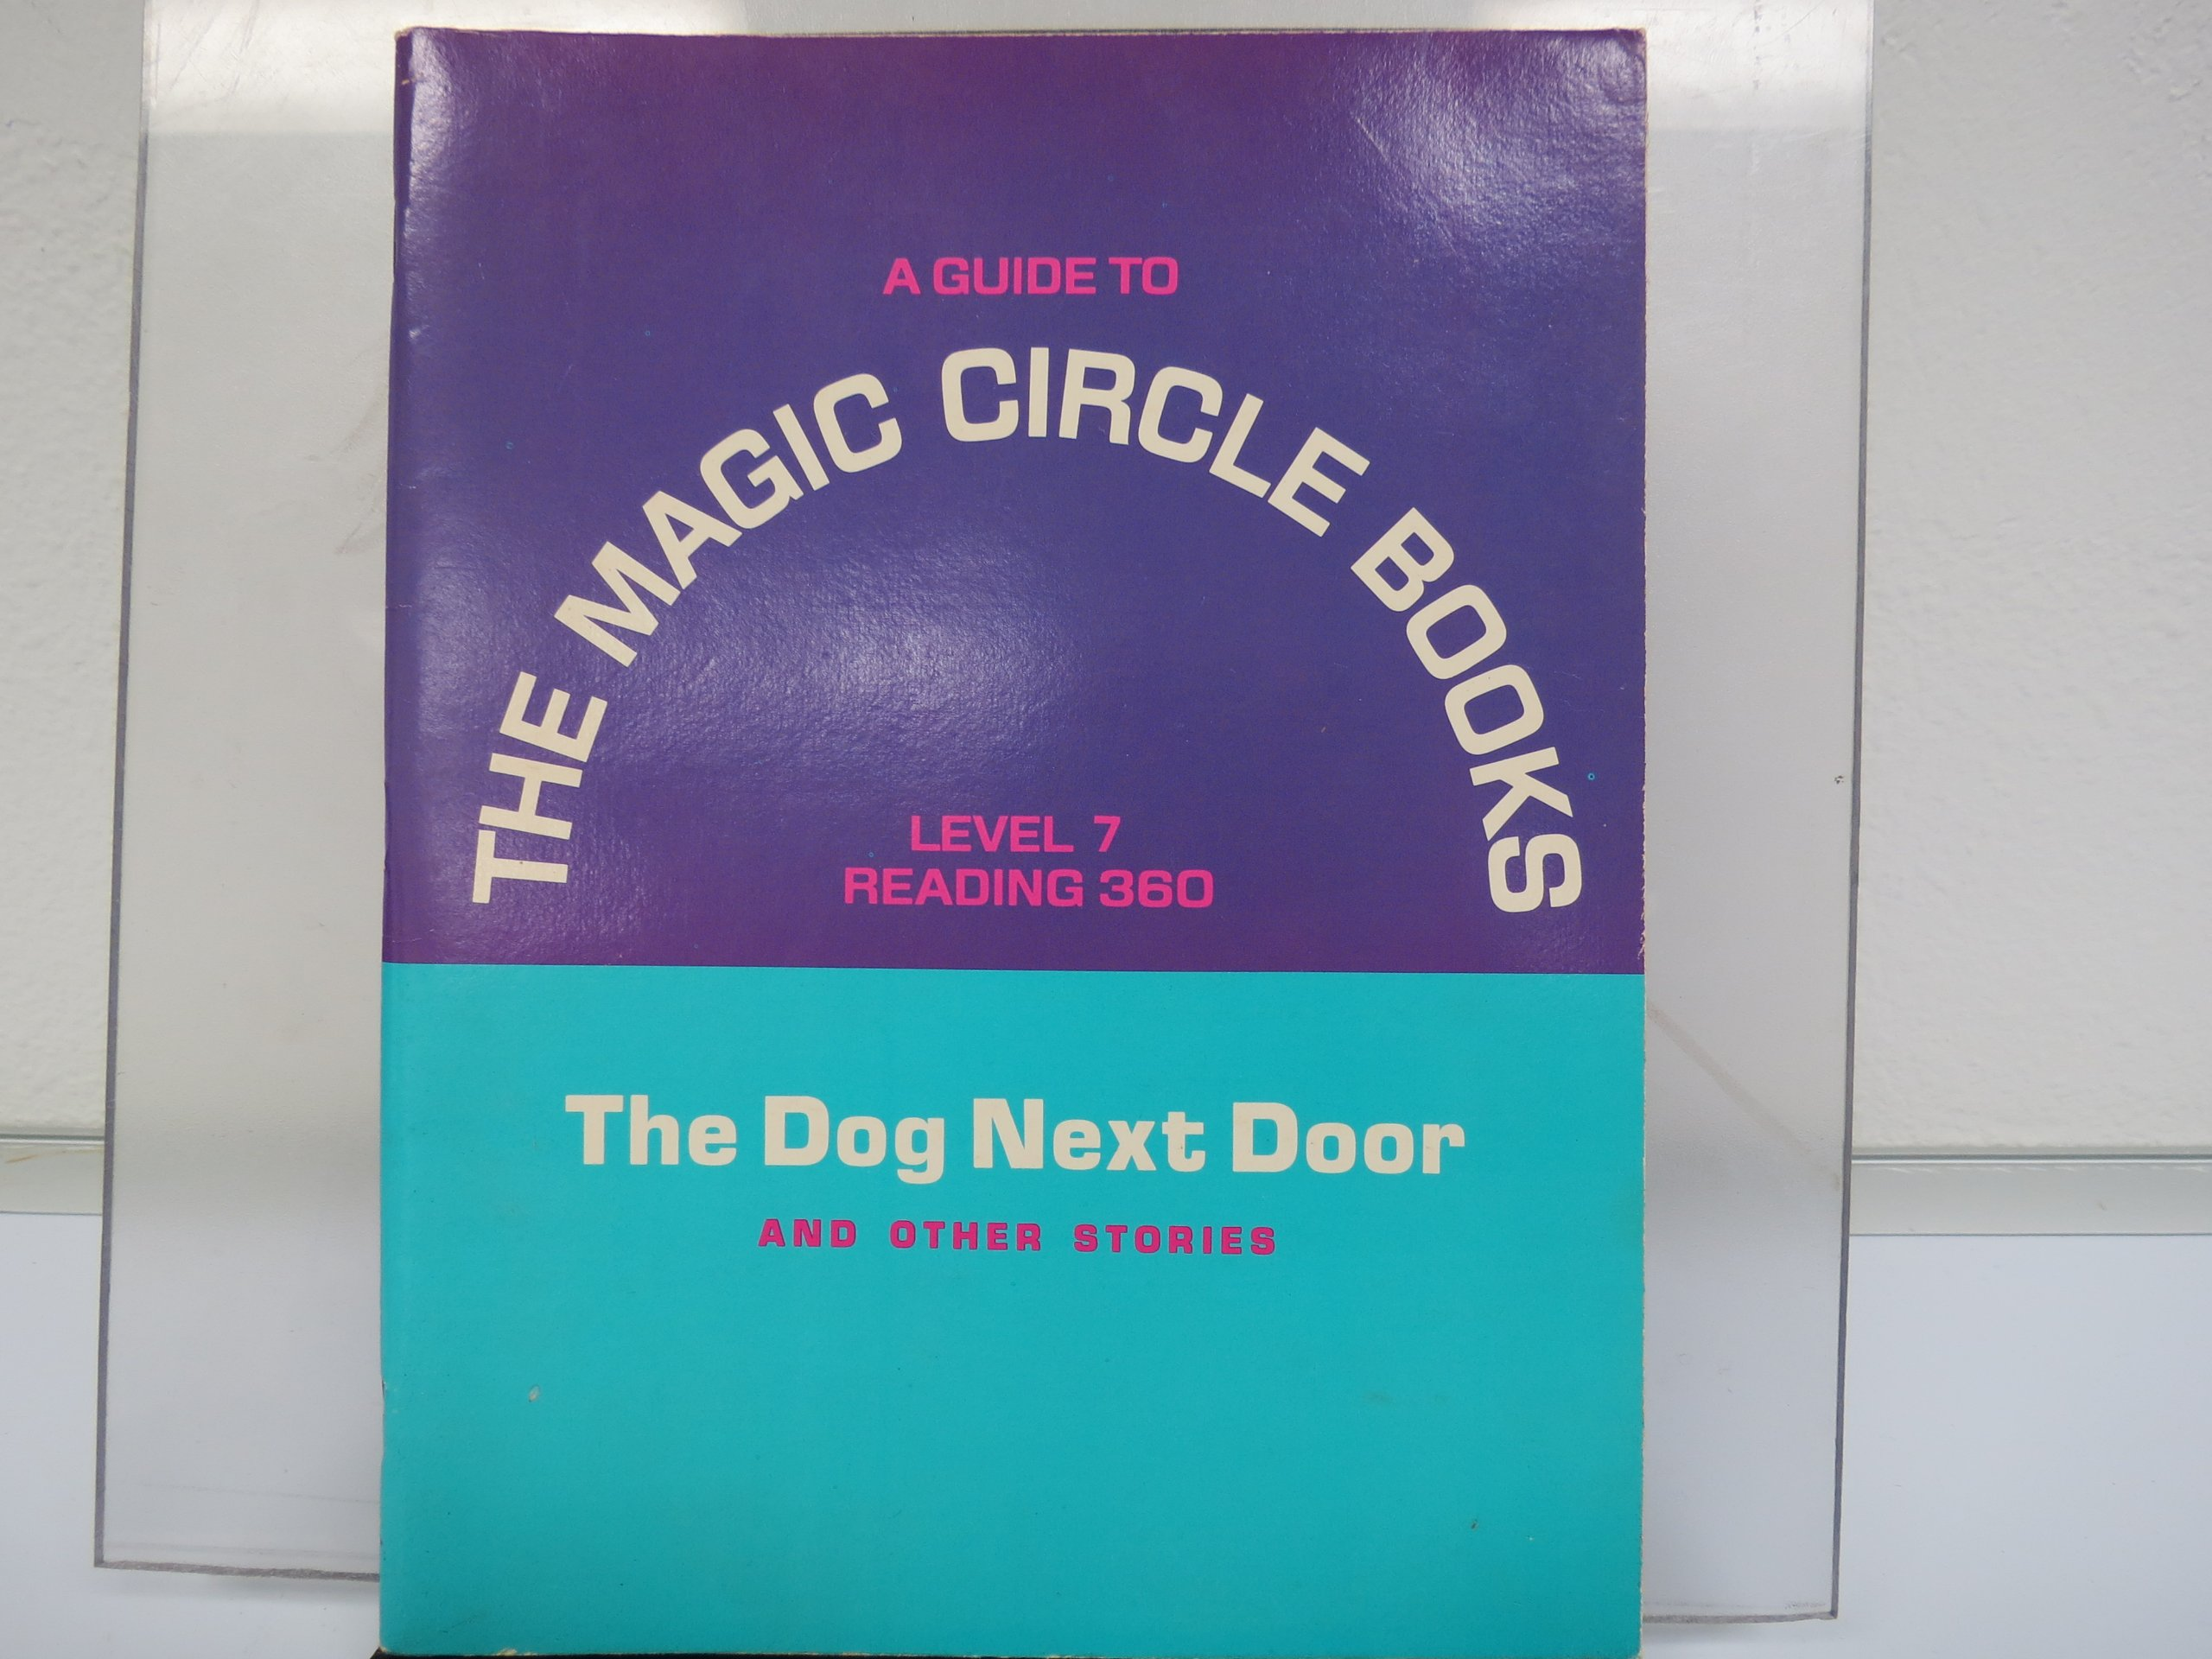 A Guide To The Magic Circle Books For Level 7 The Dog Next Door